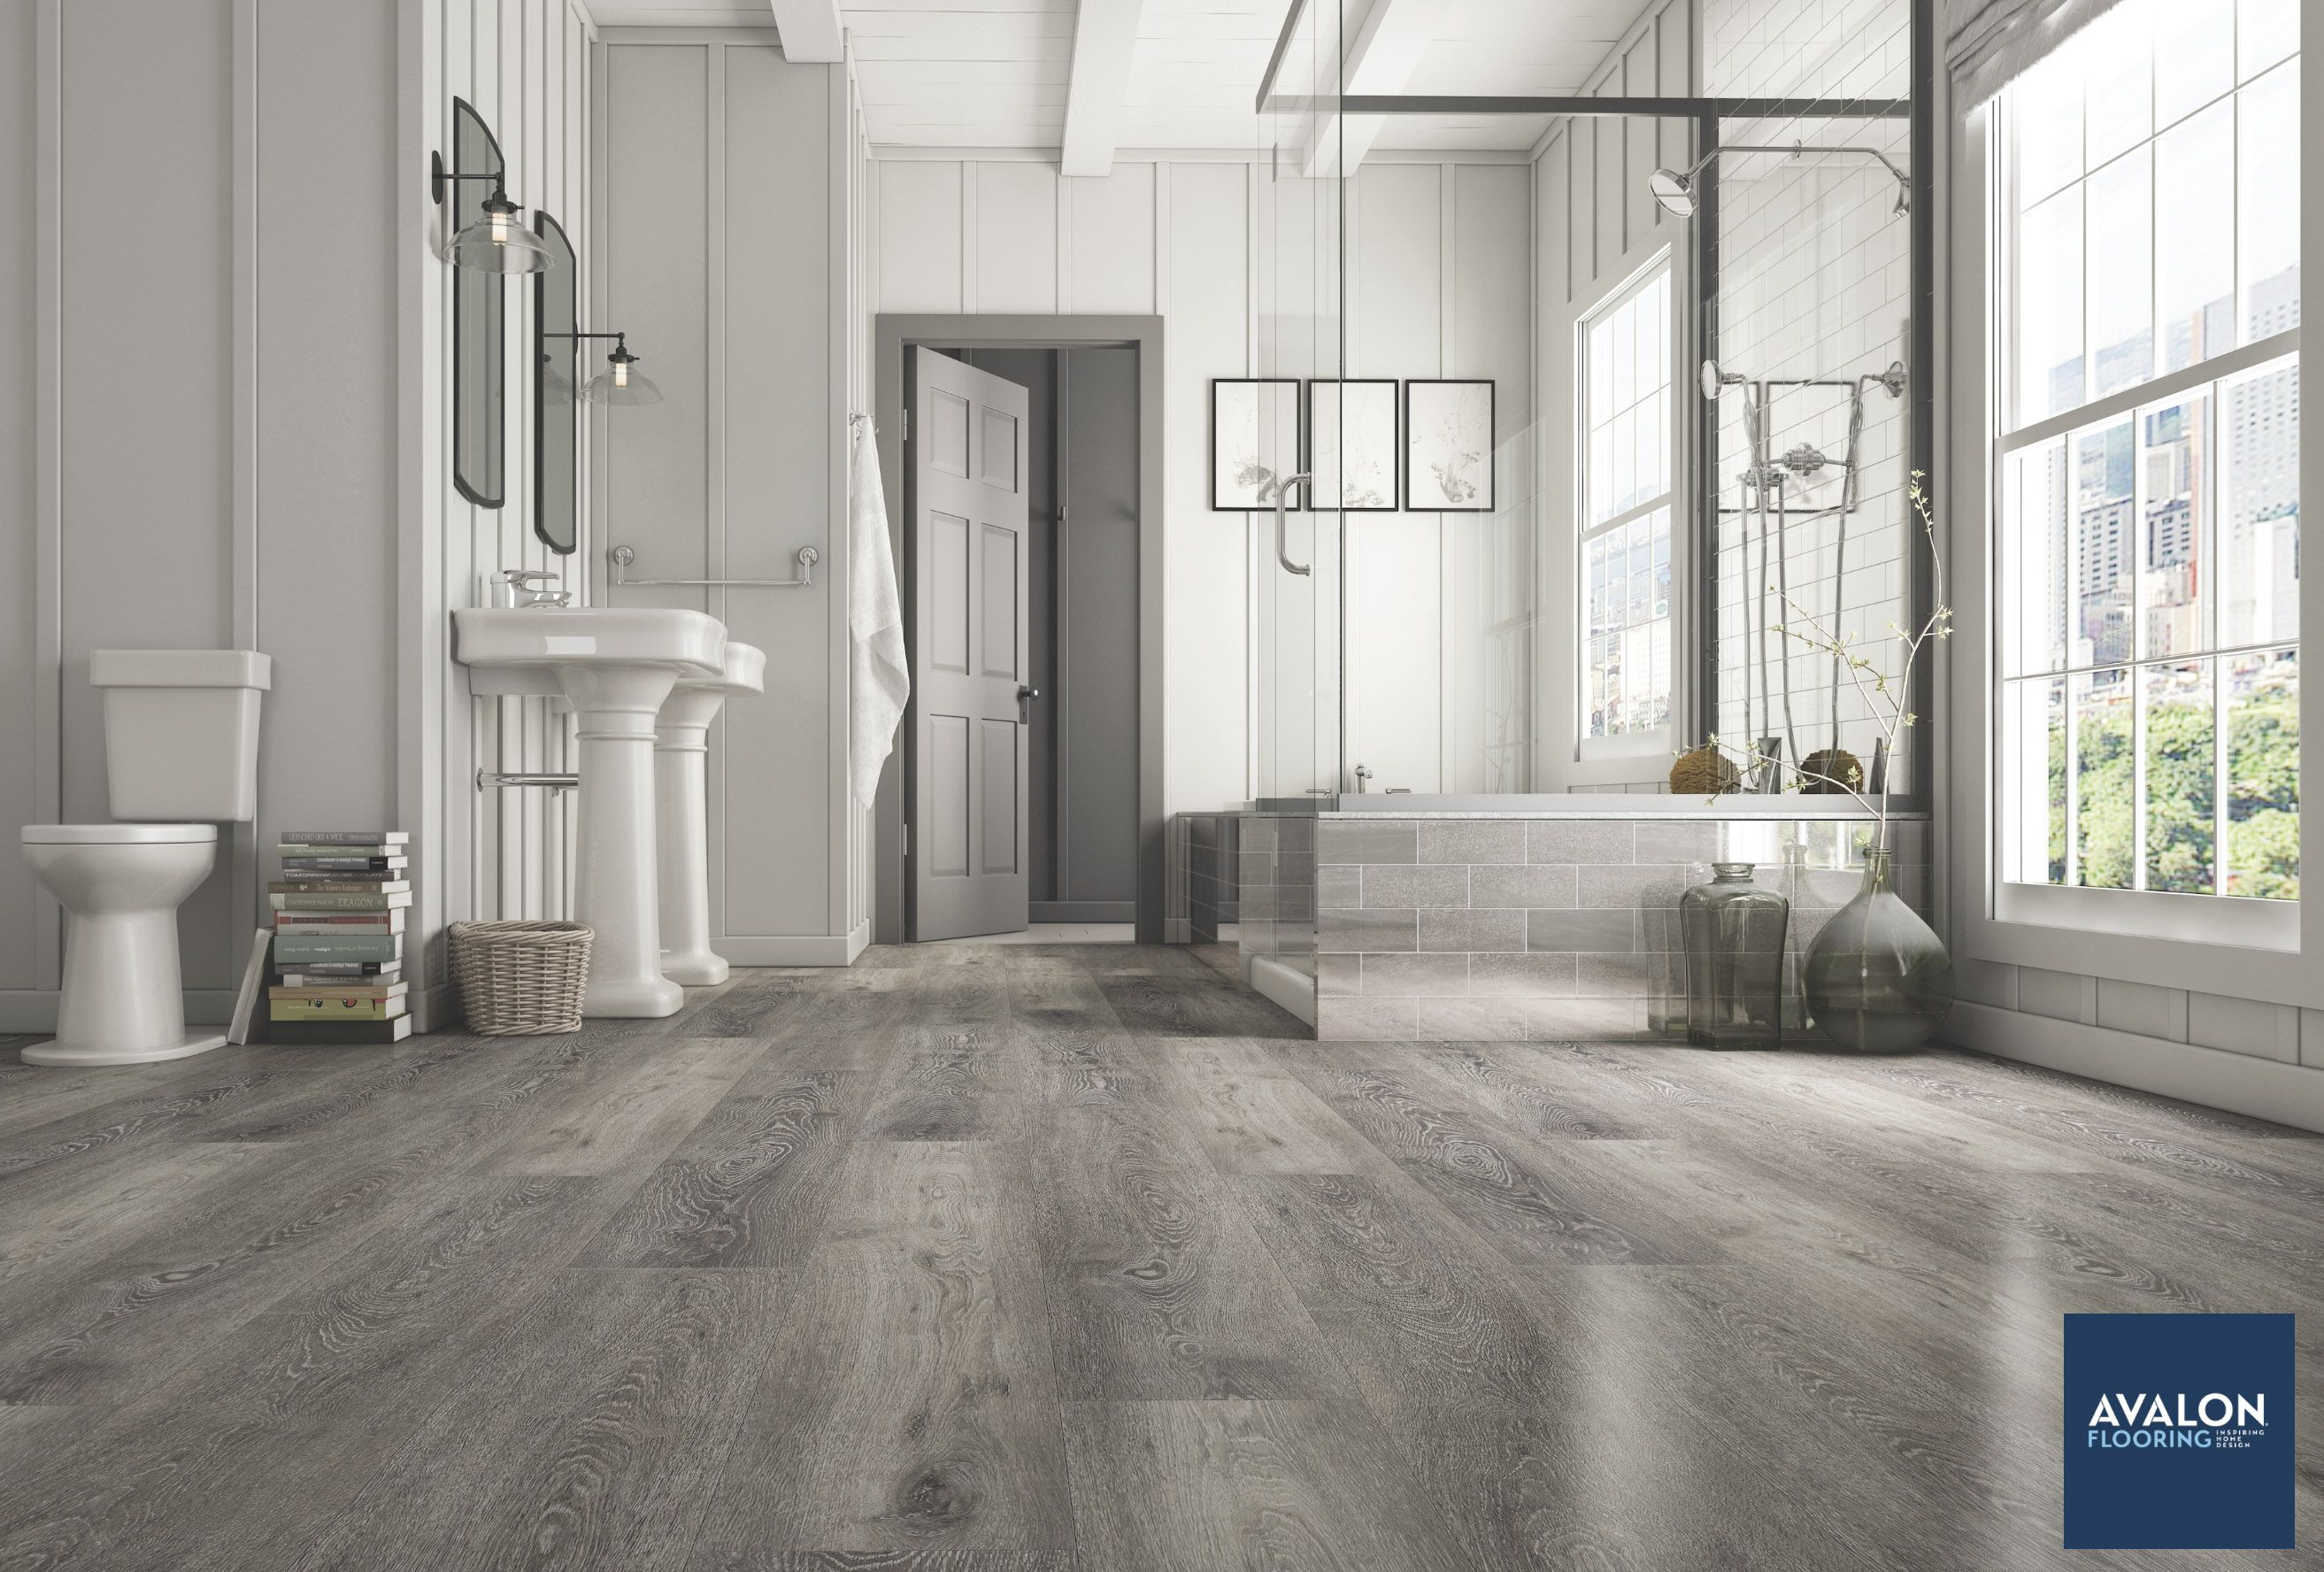 Performax Vinyl Flooring Is An Ideal Stylish And Waterproof Choice